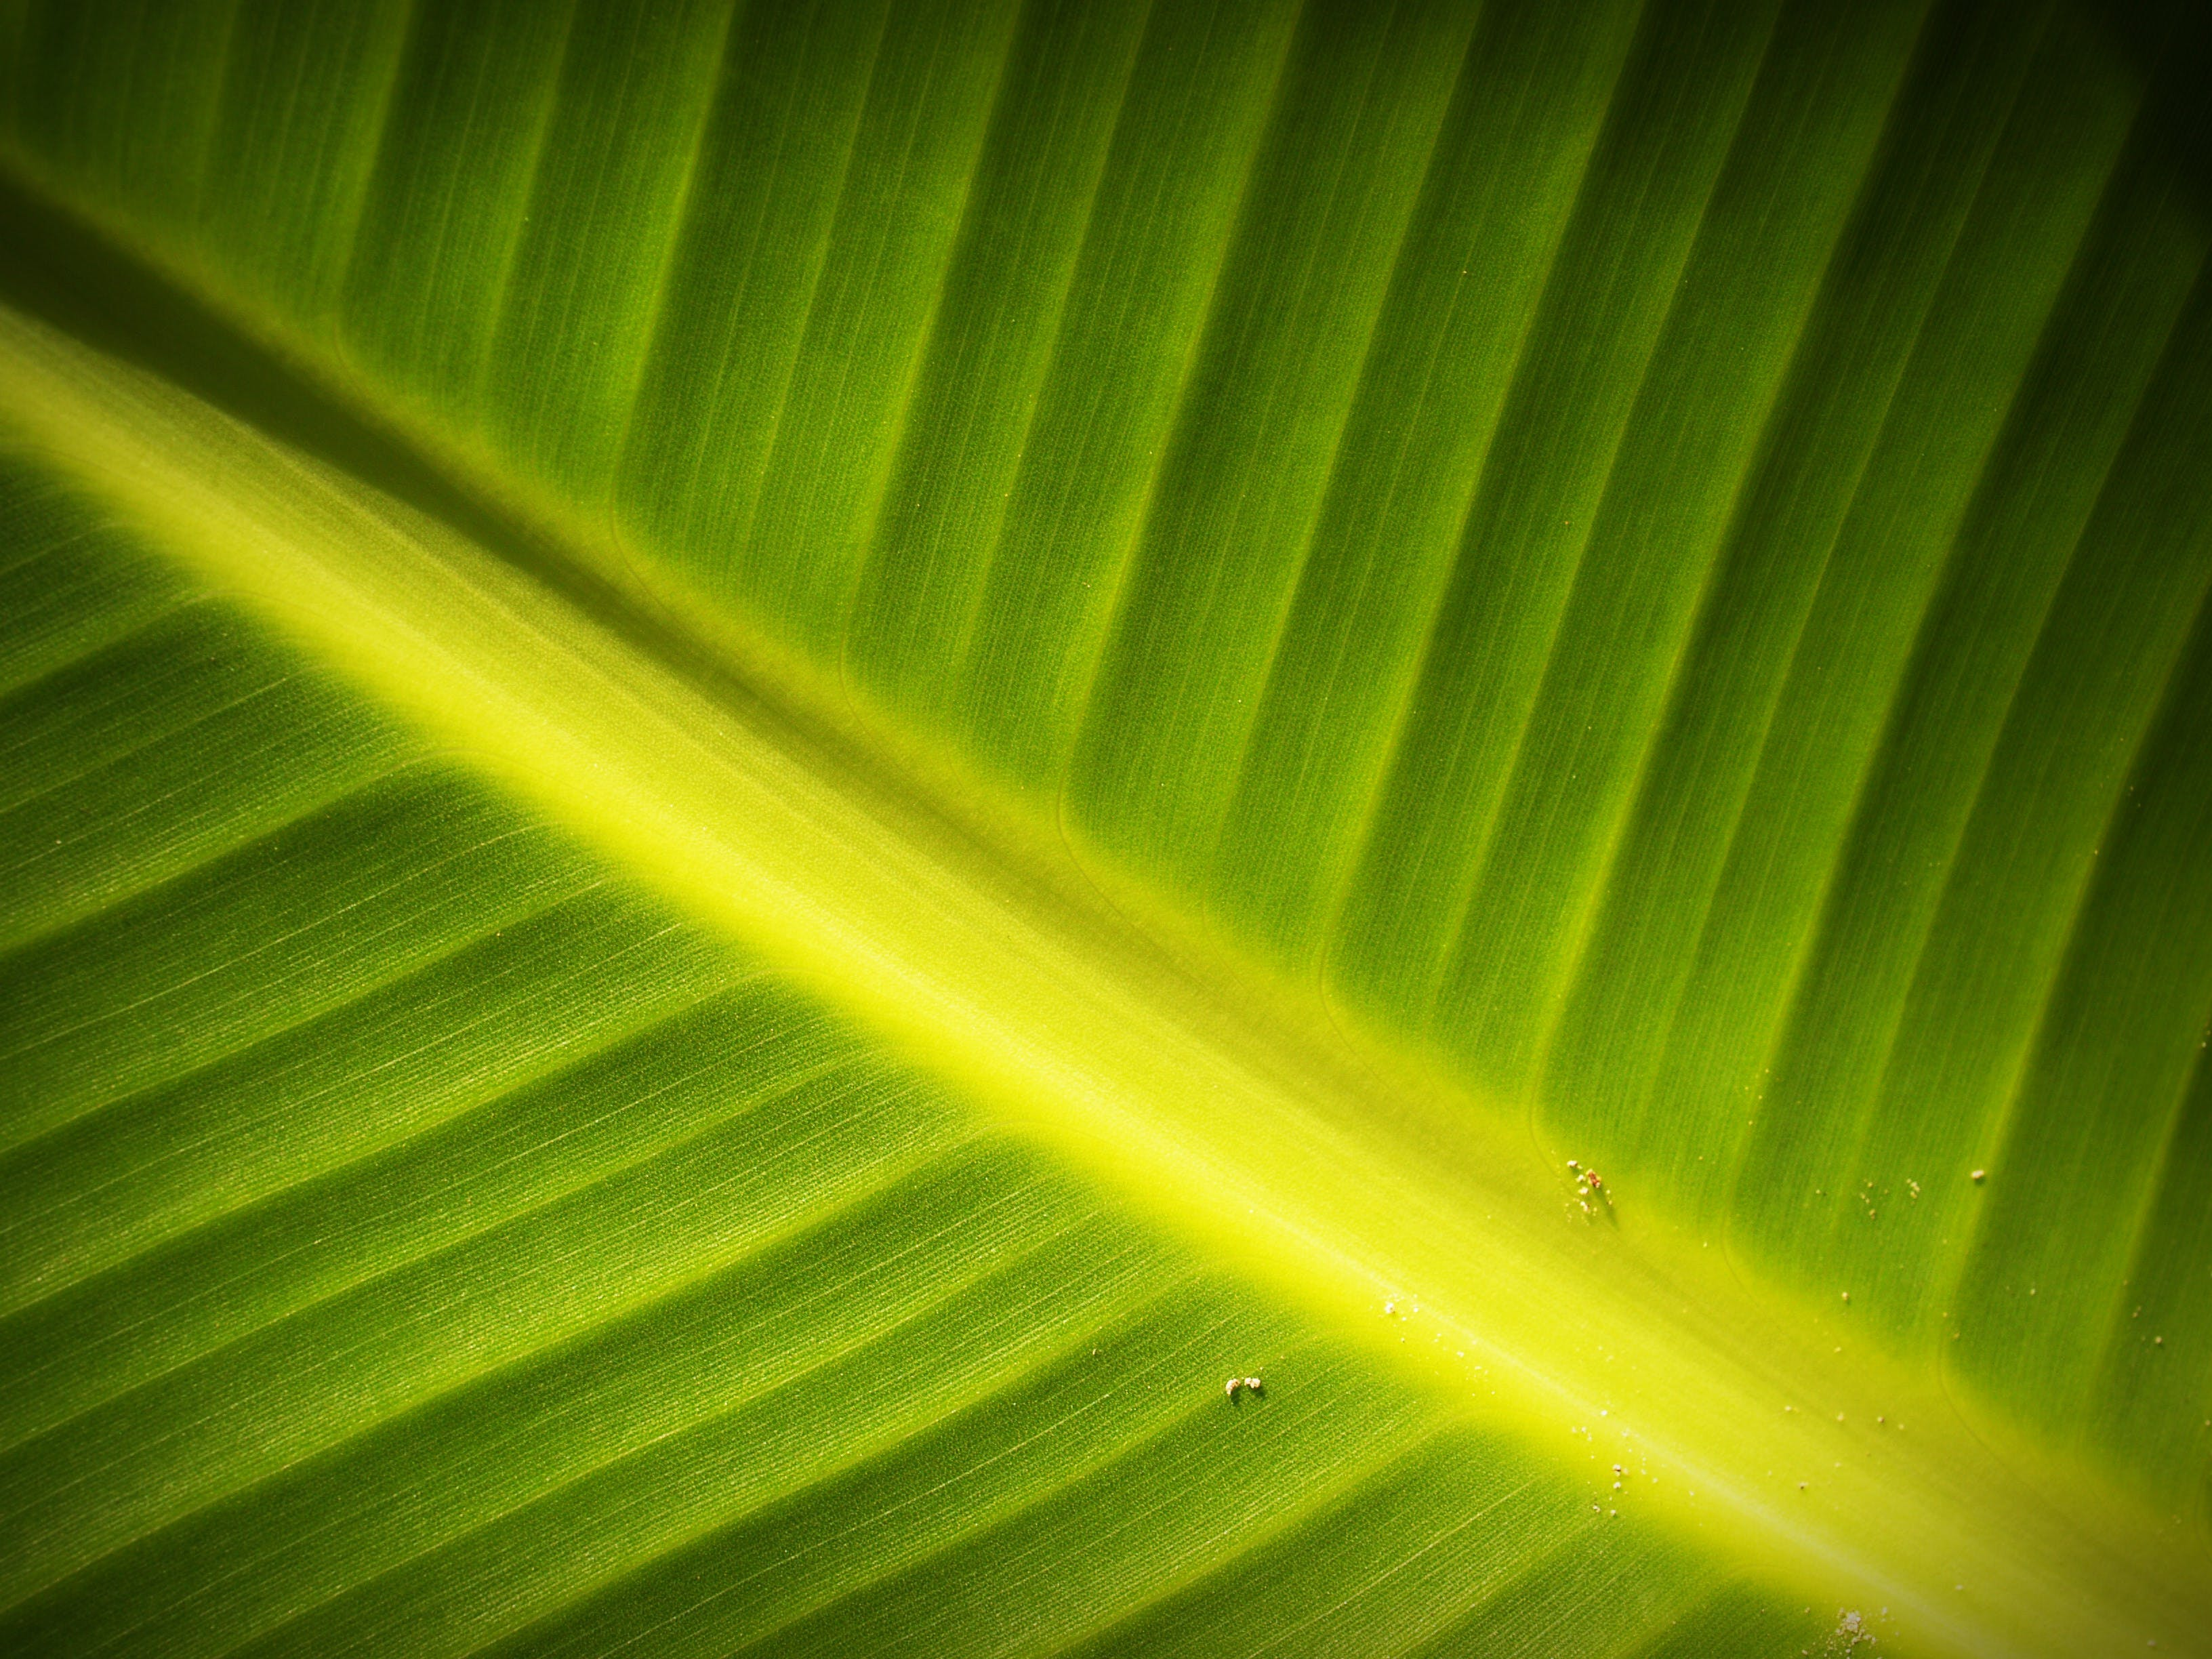 Free stock photo of nature, pattern, plant, leaf